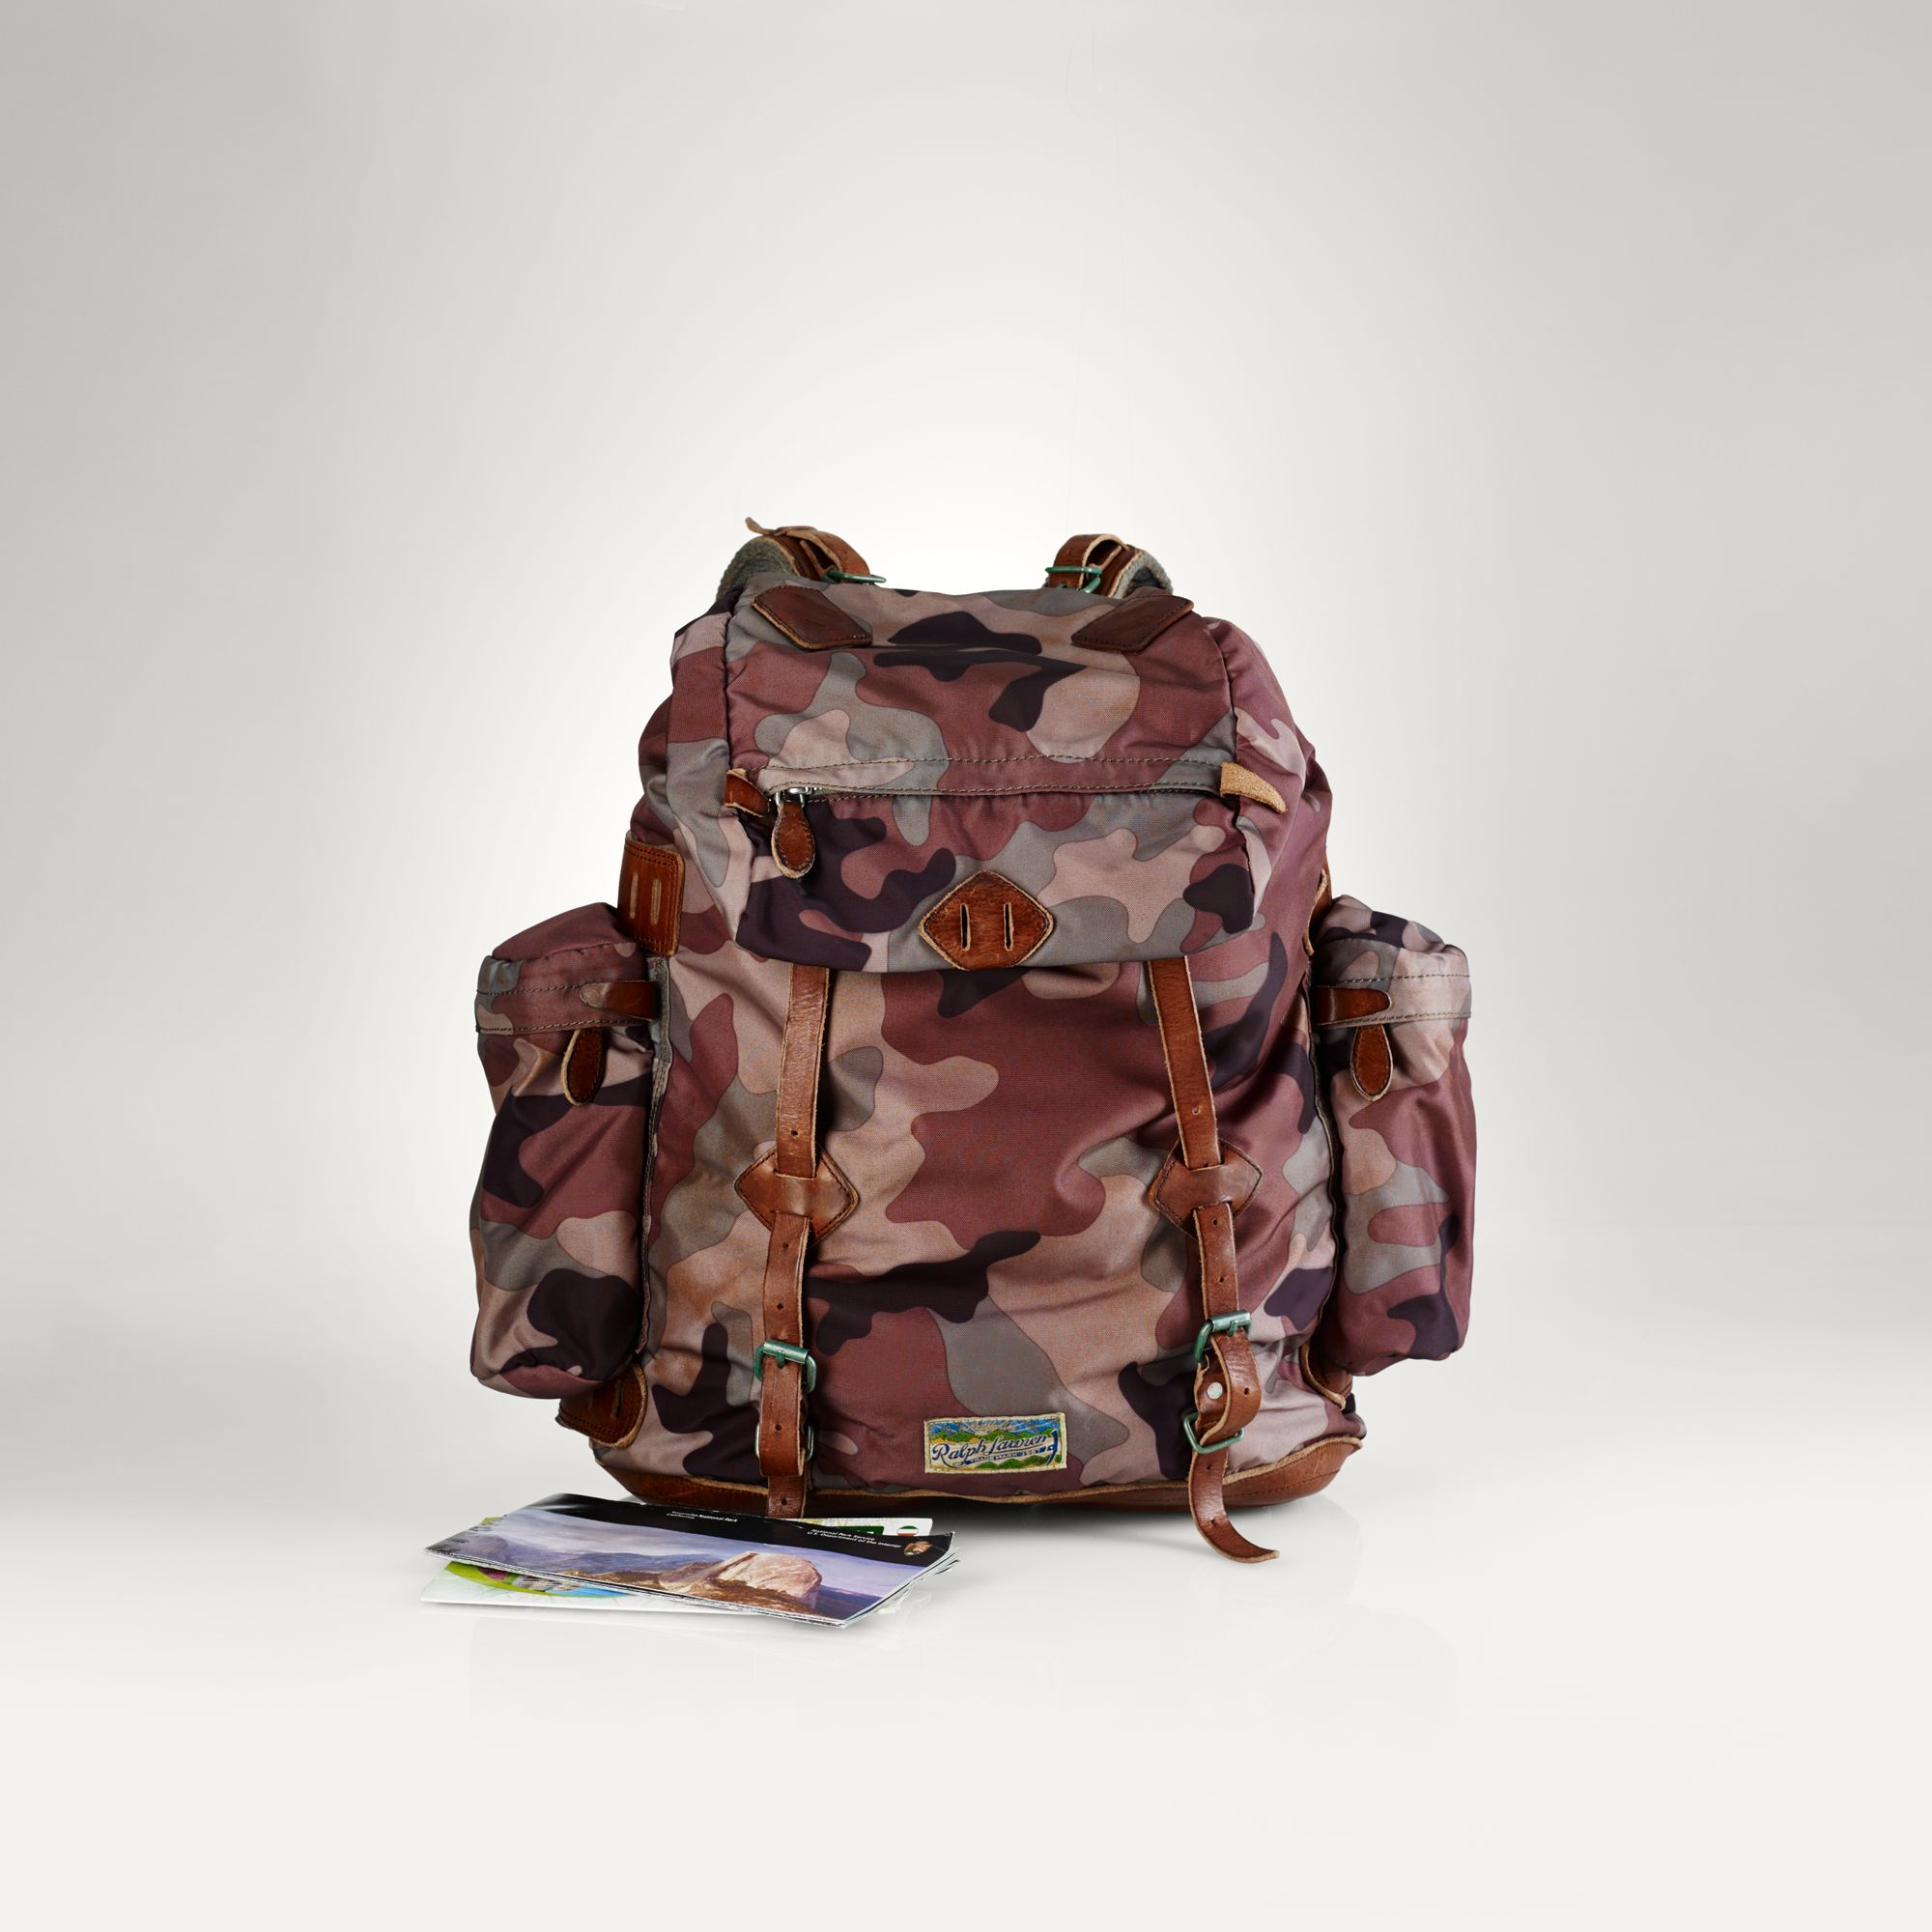 Polo Ralph Lauren Camouflage Backpack In Multicolor For